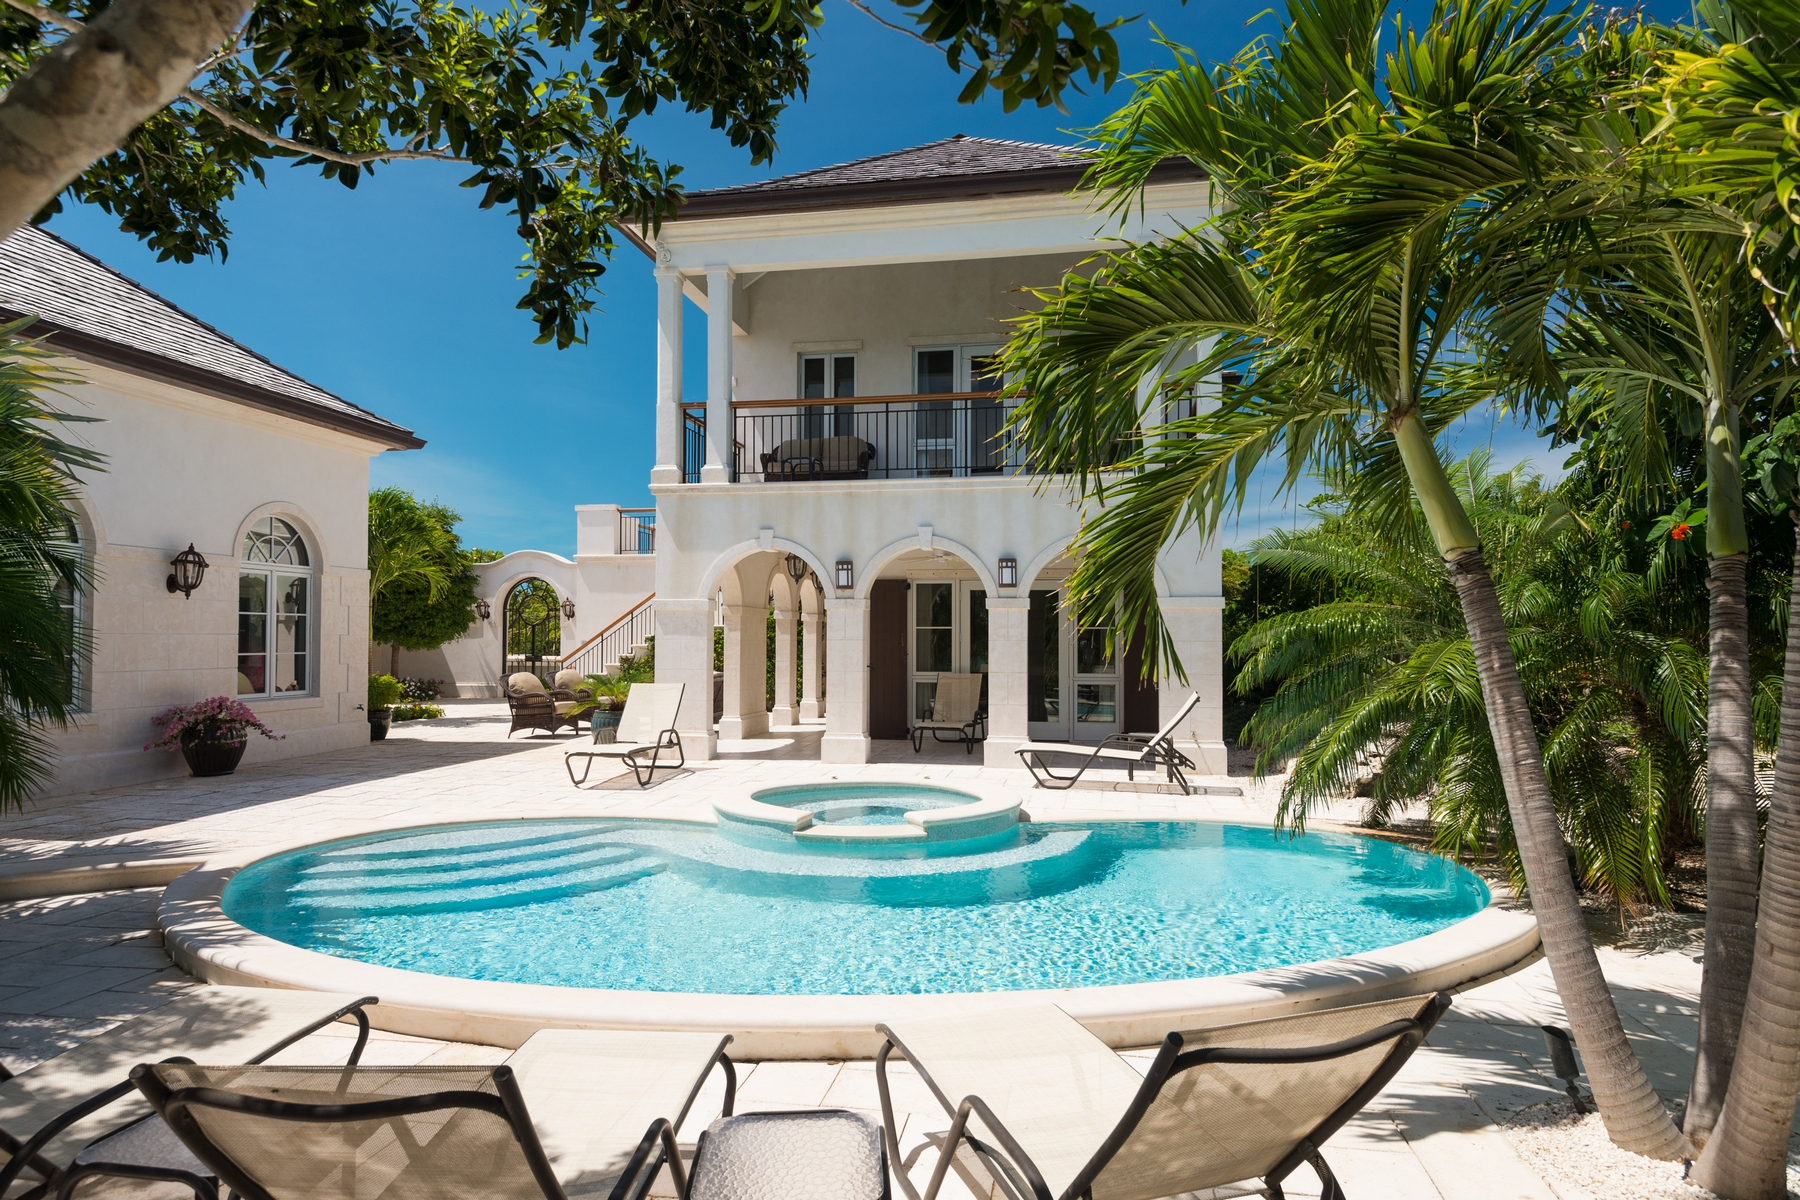 Single Family Home for Sale at Casa Barana Beachfront Thompson Cove, Providenciales, TCI BWI Turks And Caicos Islands